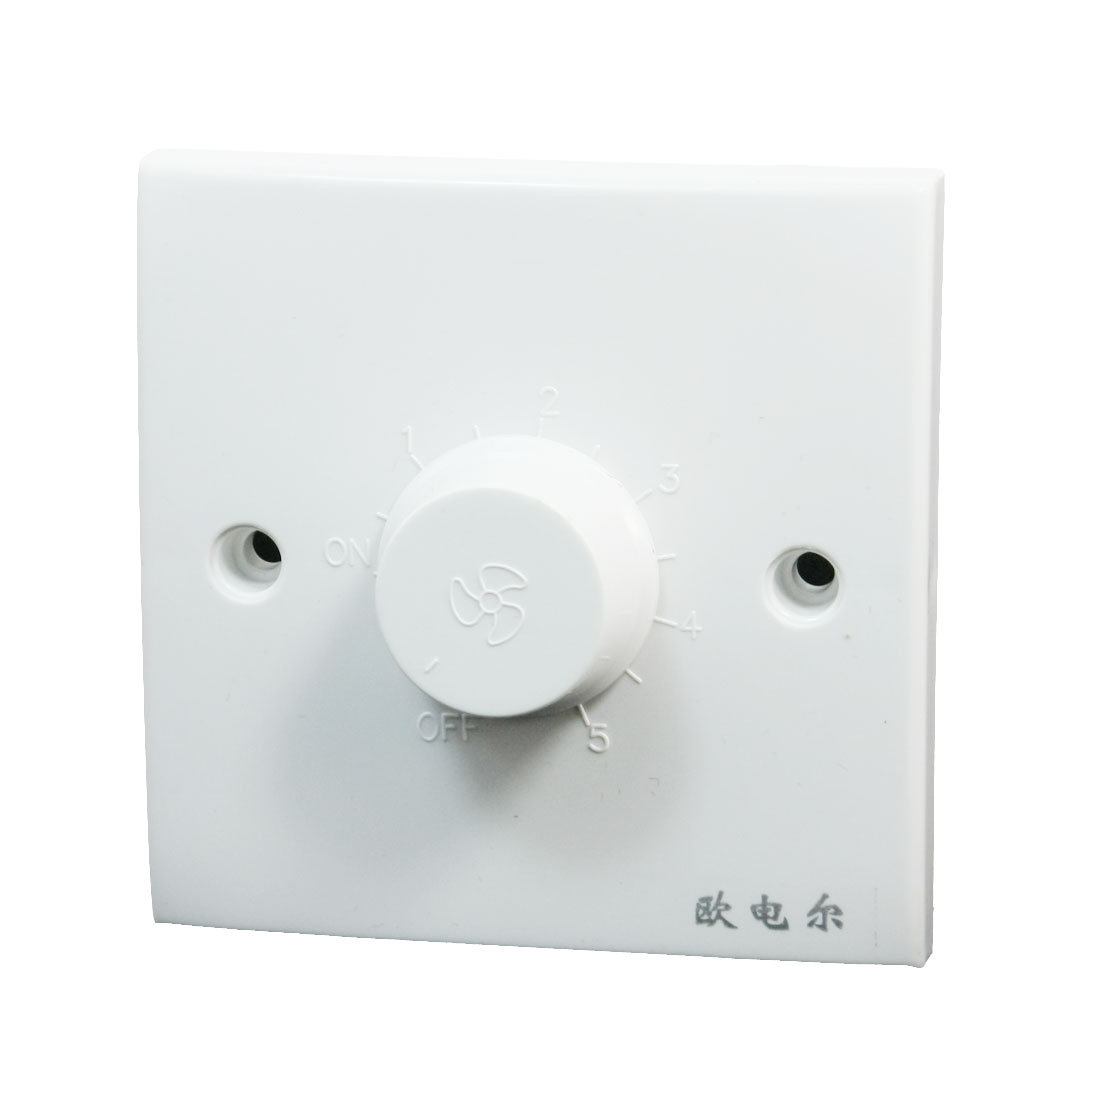 AC 200-250V Ceiling Fan Speed Control Wall Mounted Plate Panel Switch